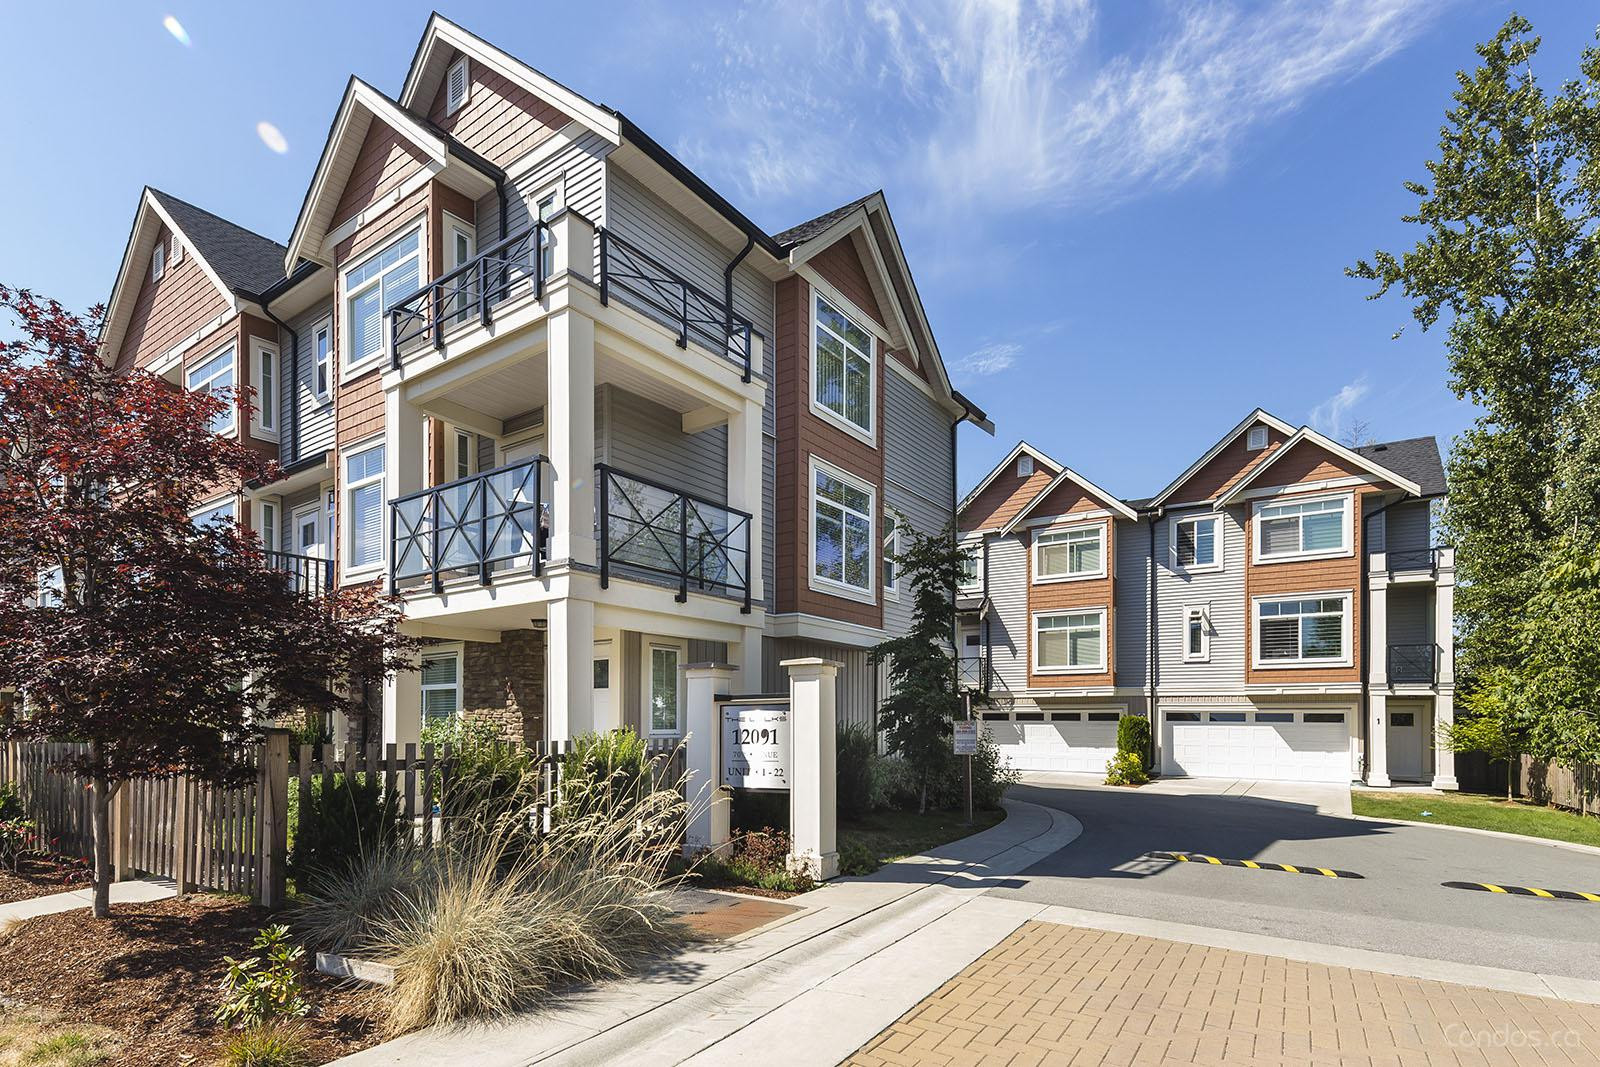 The Walks at 12091 70 Ave, Surrey 0